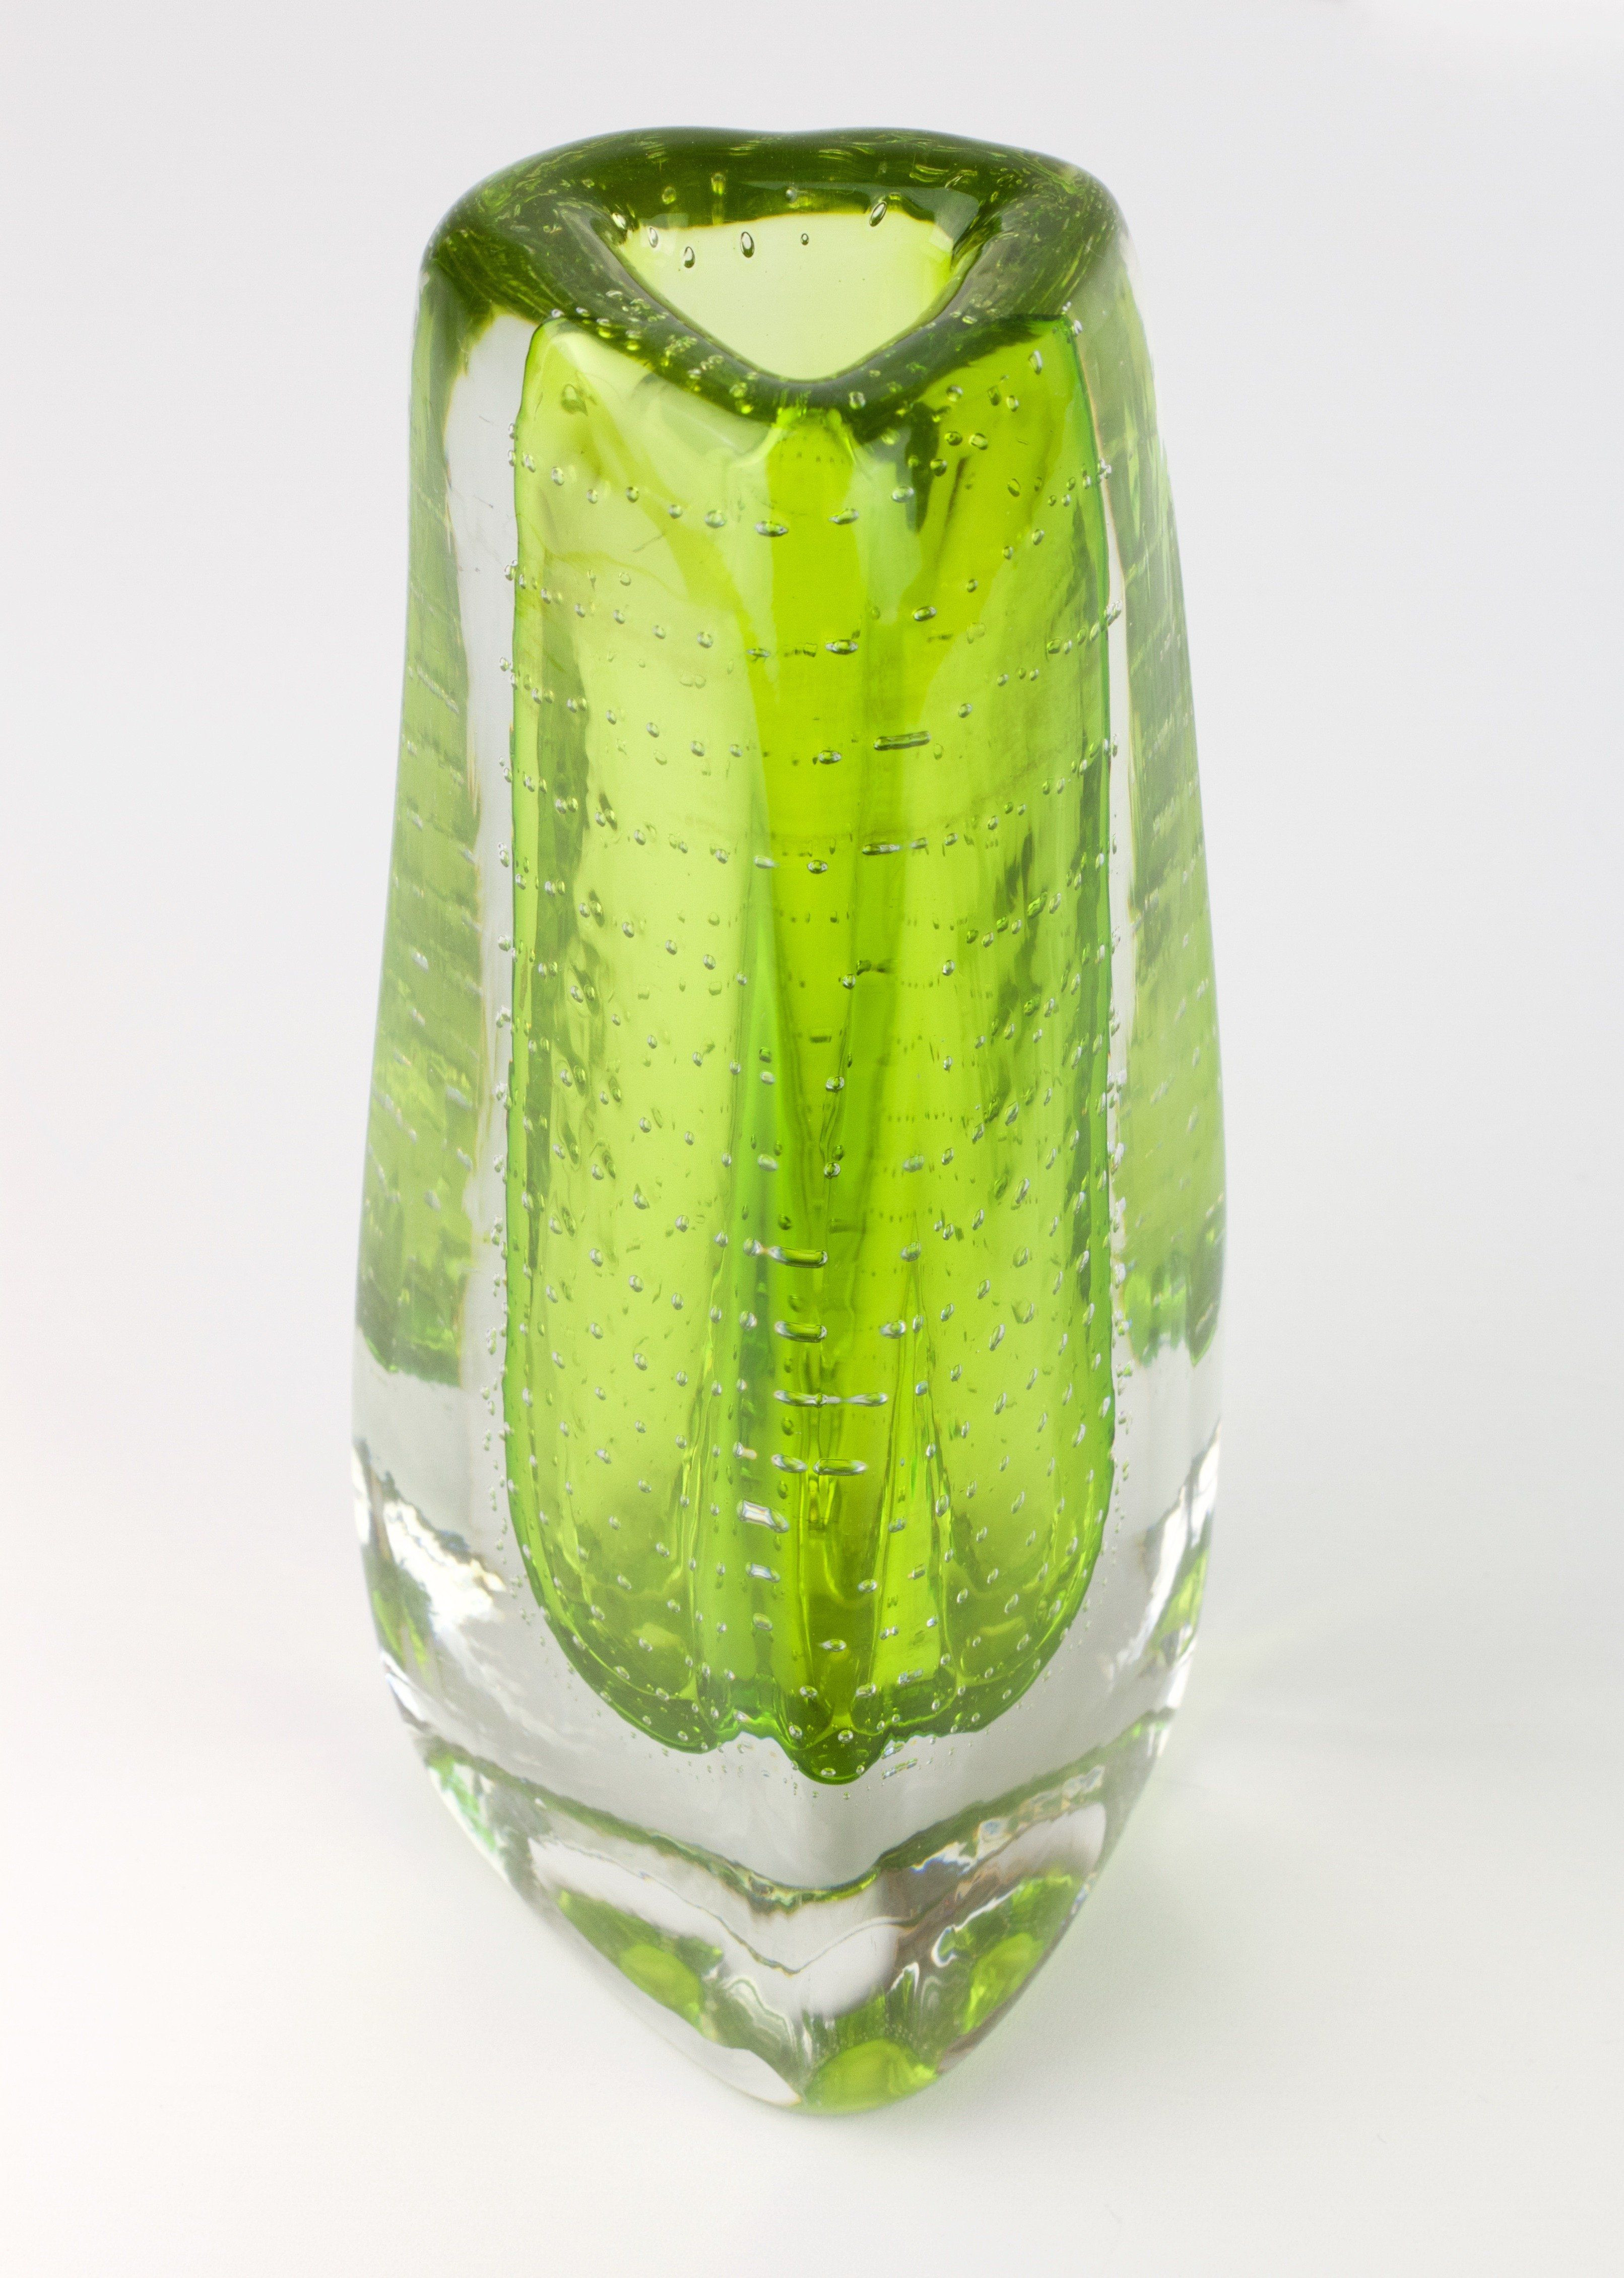 vision glass vases wholesale of 35 antique green glass vases the weekly world for 35 antique green glass vases